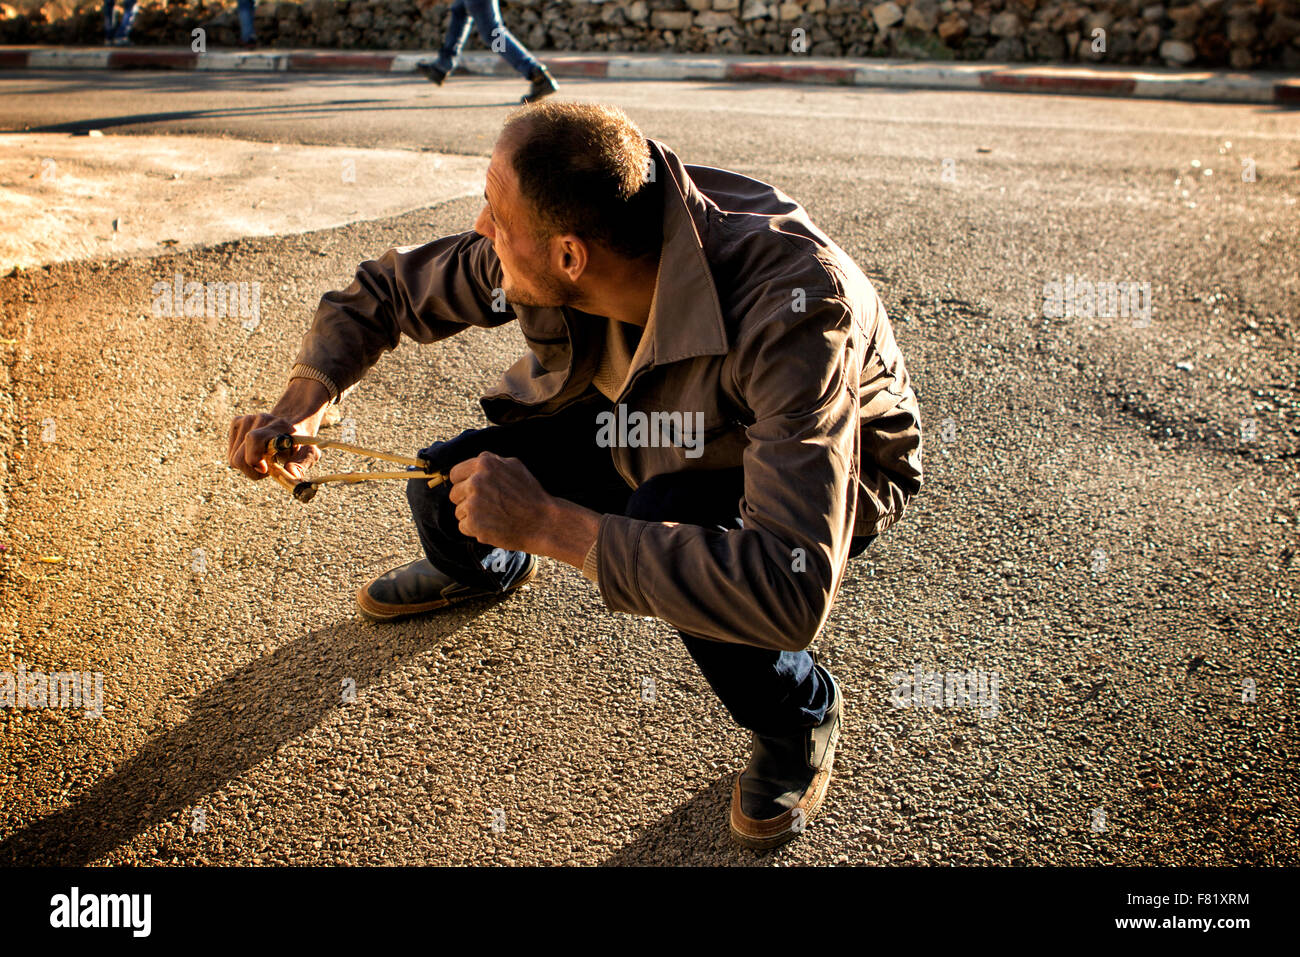 Near Ramallah, West Bank, Mideast. 4th December, 2015. A Palestinian man fires his slingshot towards Israeli soldiers - Stock Image